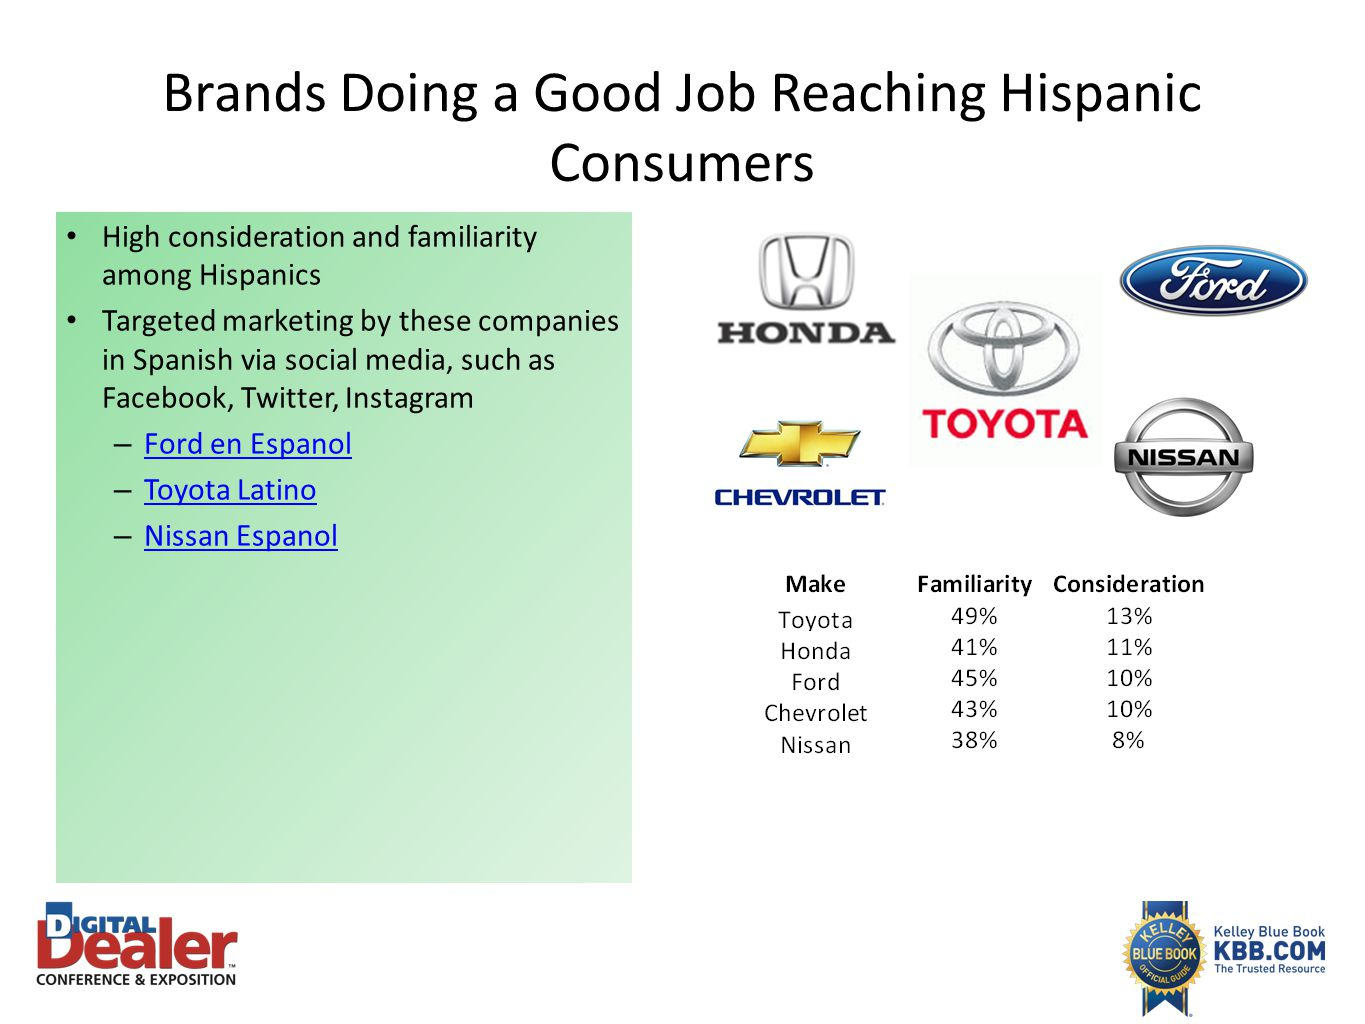 Brands Doing a Good Job Reaching Hispanic Consumers